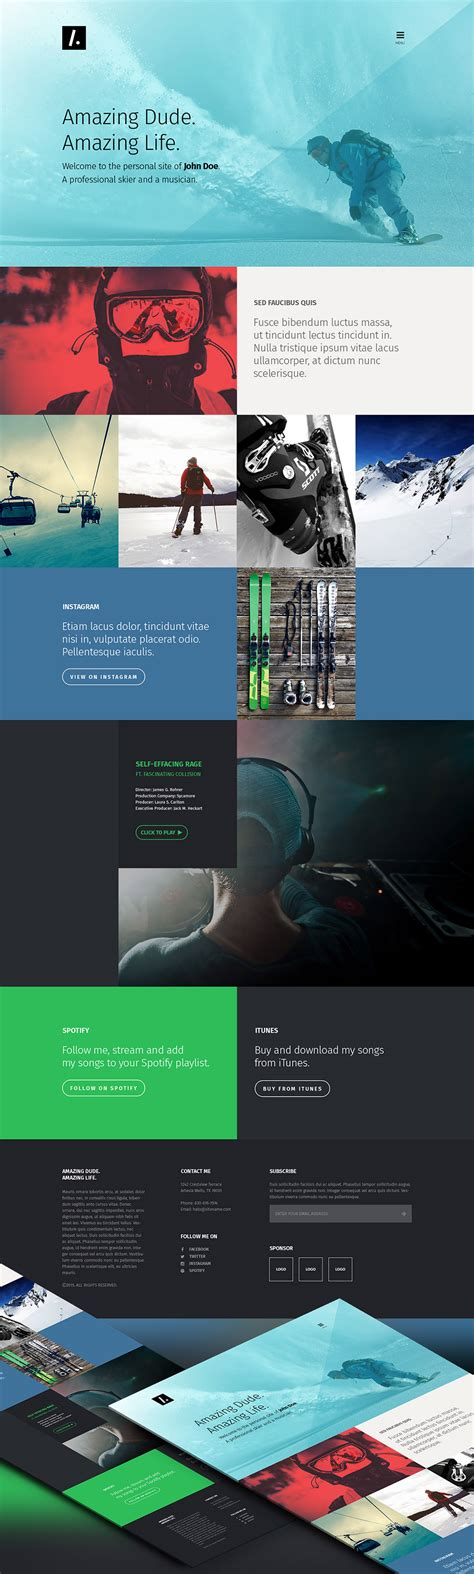 One Page Personal Portfolio Website Template Free Psd At Downloadfreepsd Com Free Portfolio Website Templates